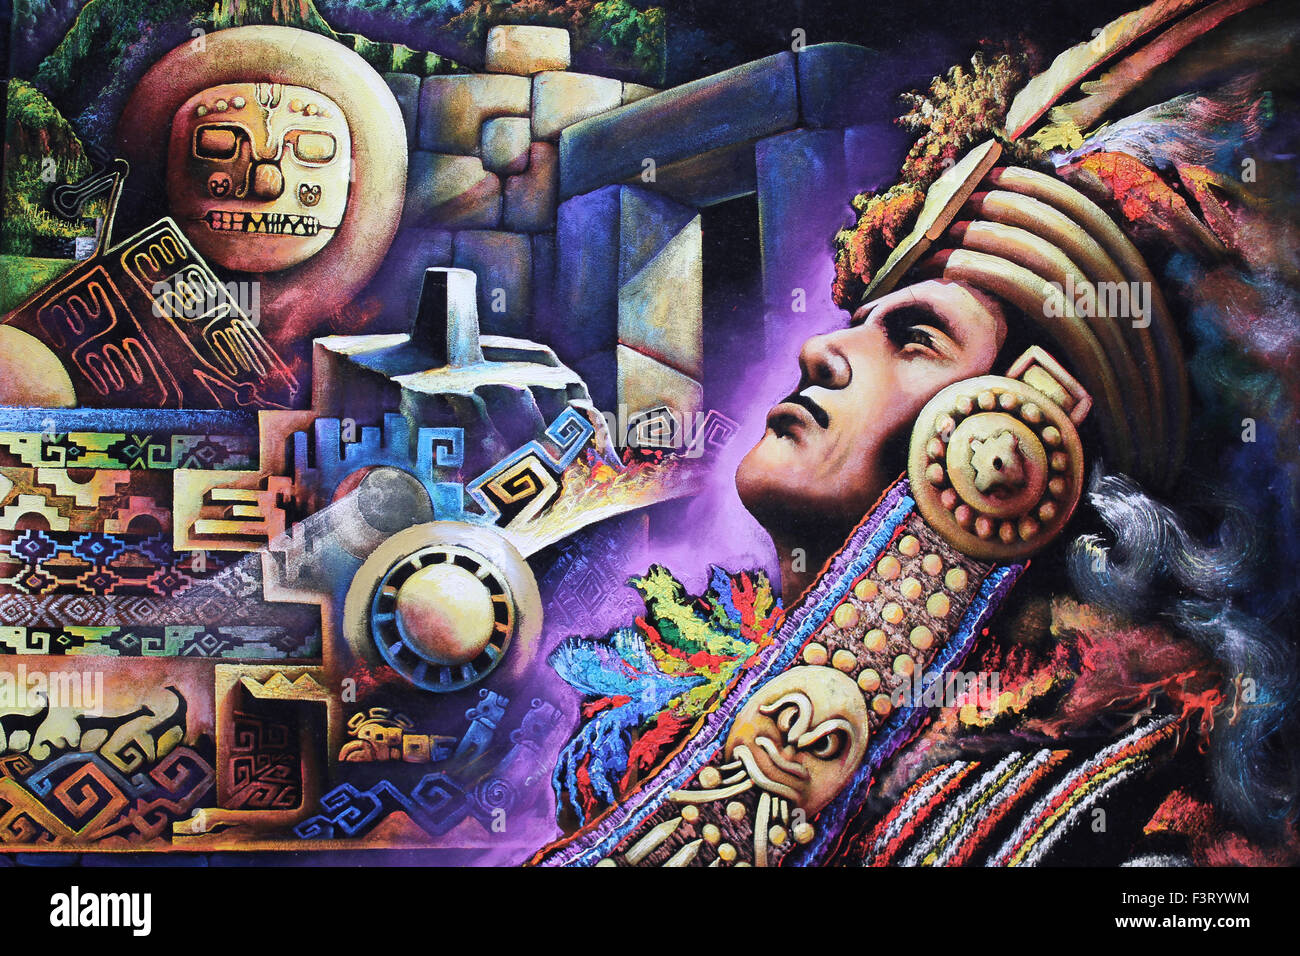 Contemporary Painting Of An Inca Warrior And Inca Symbolism - Stock Image